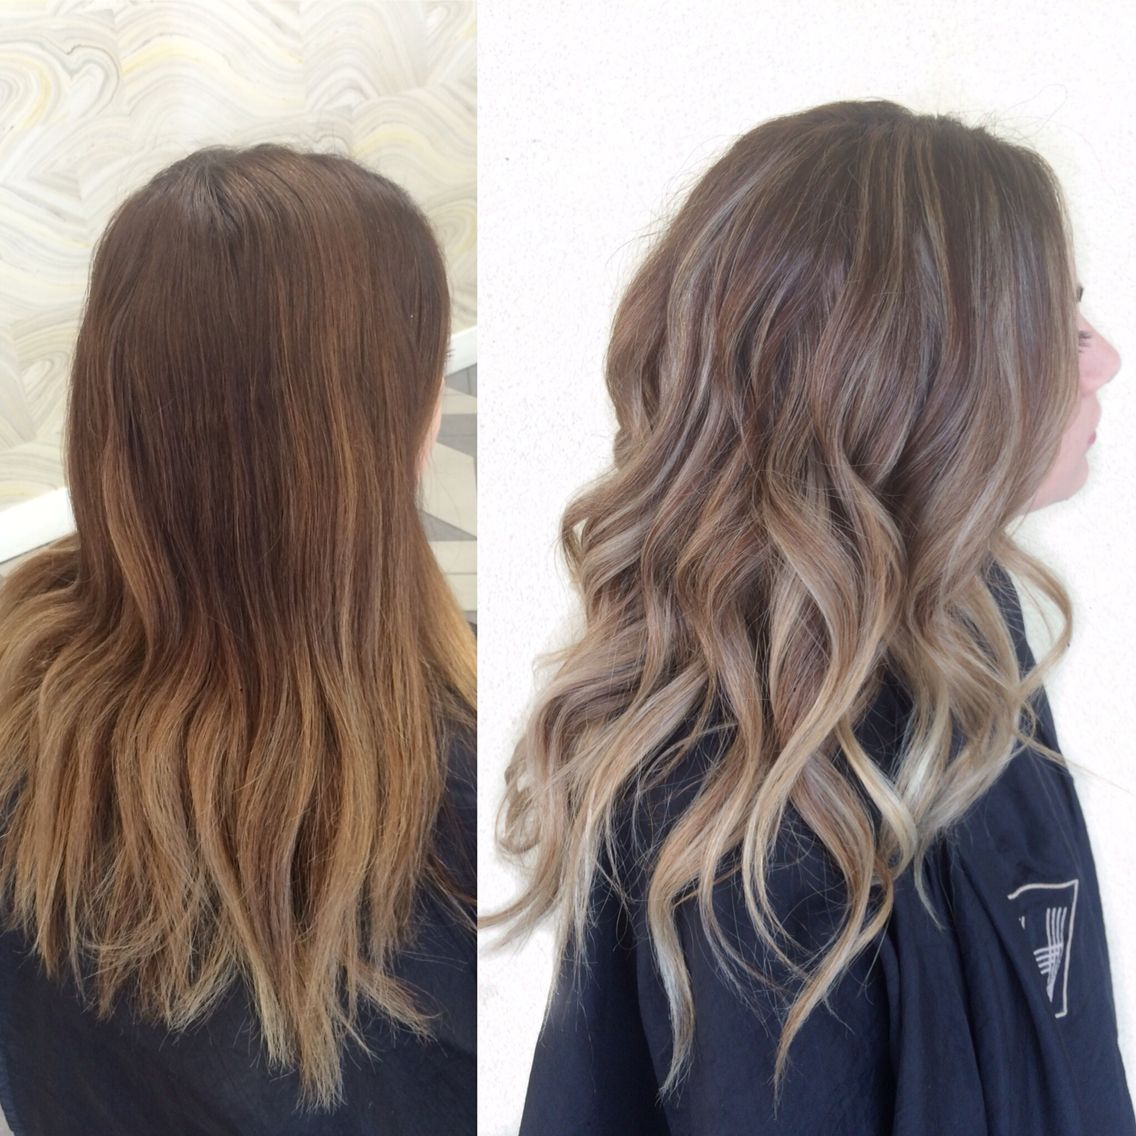 No More Brassy Hair Done By Hair By Alexa At Habit Salon With